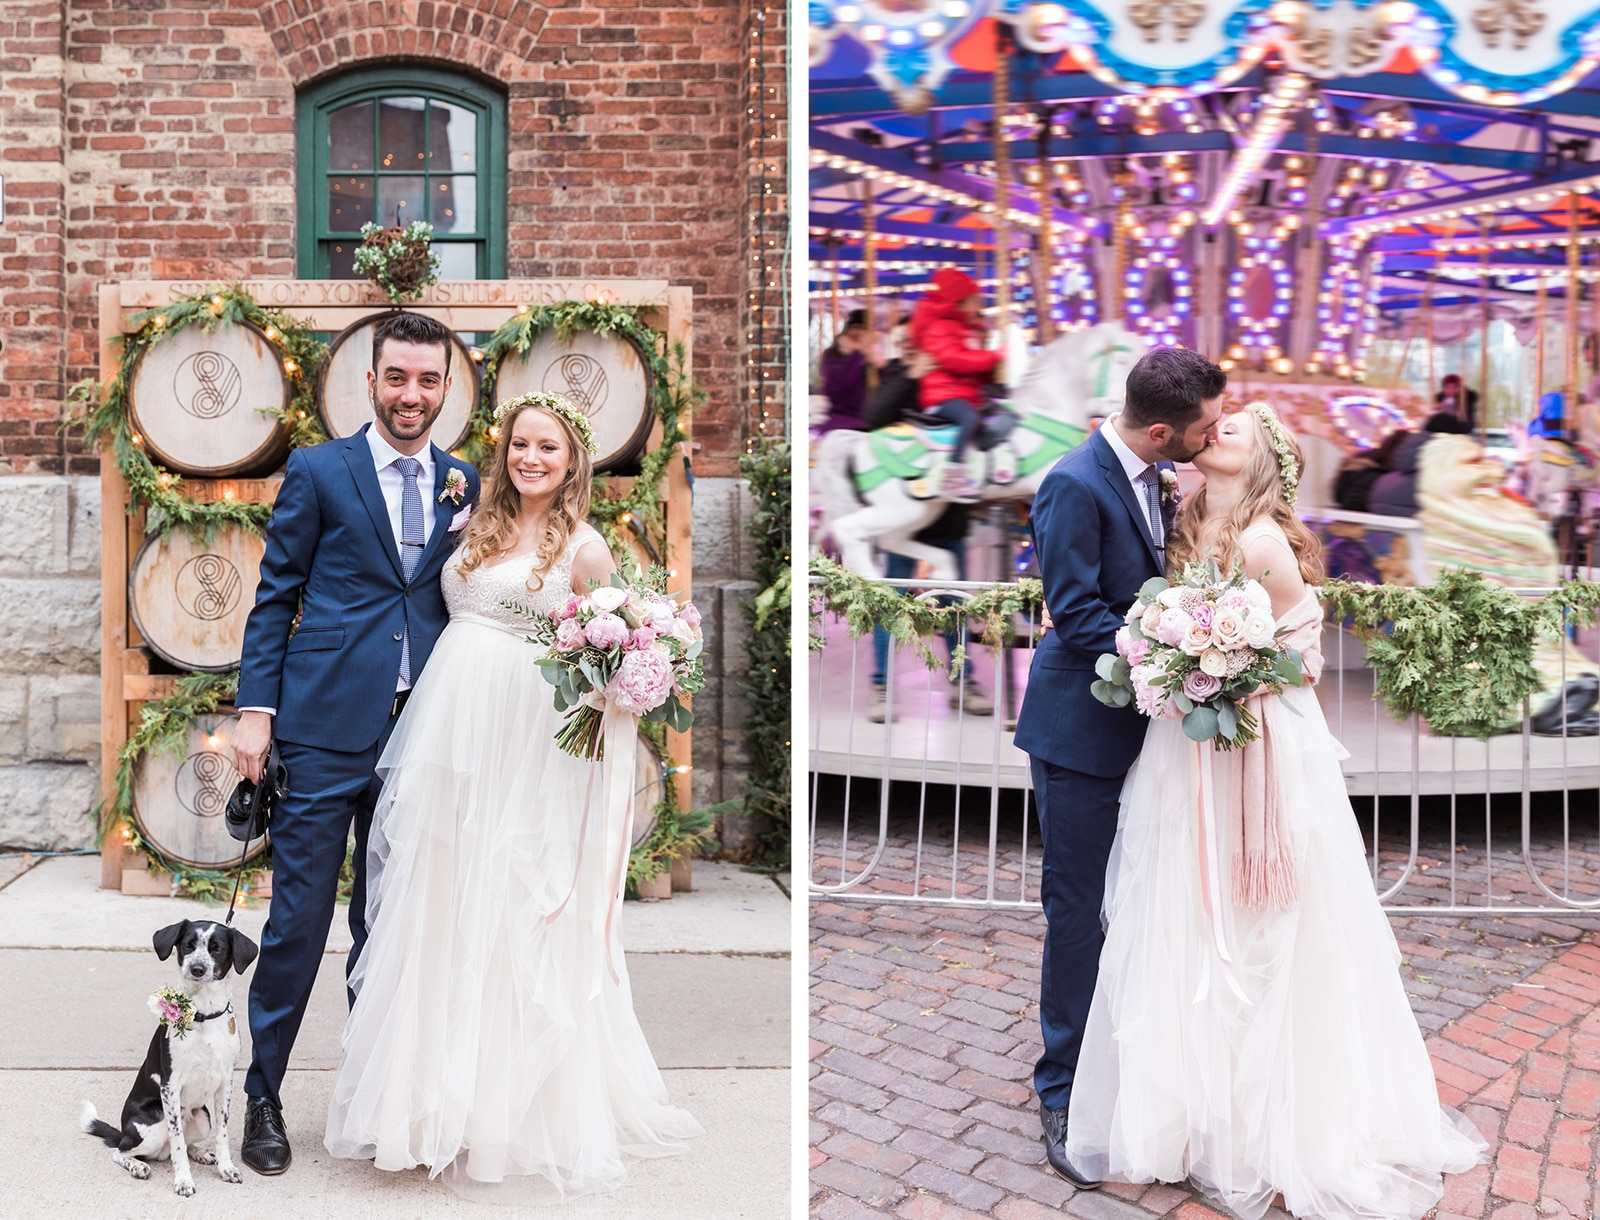 Toronto Christmas Market Wedding